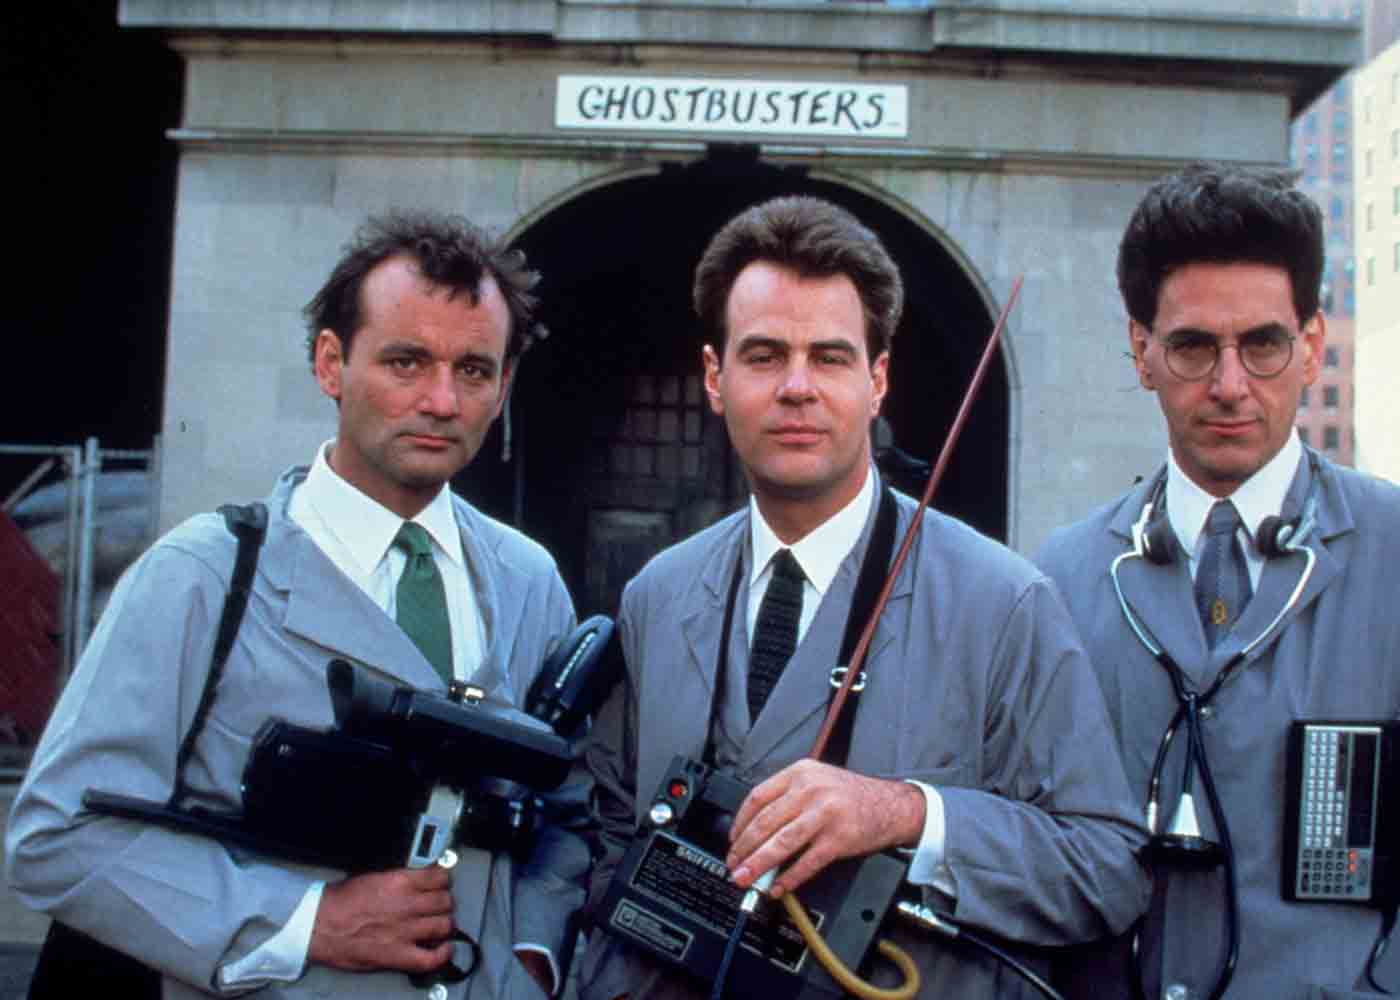 Ghostbusters 3 Officially Happening, Teaser Released